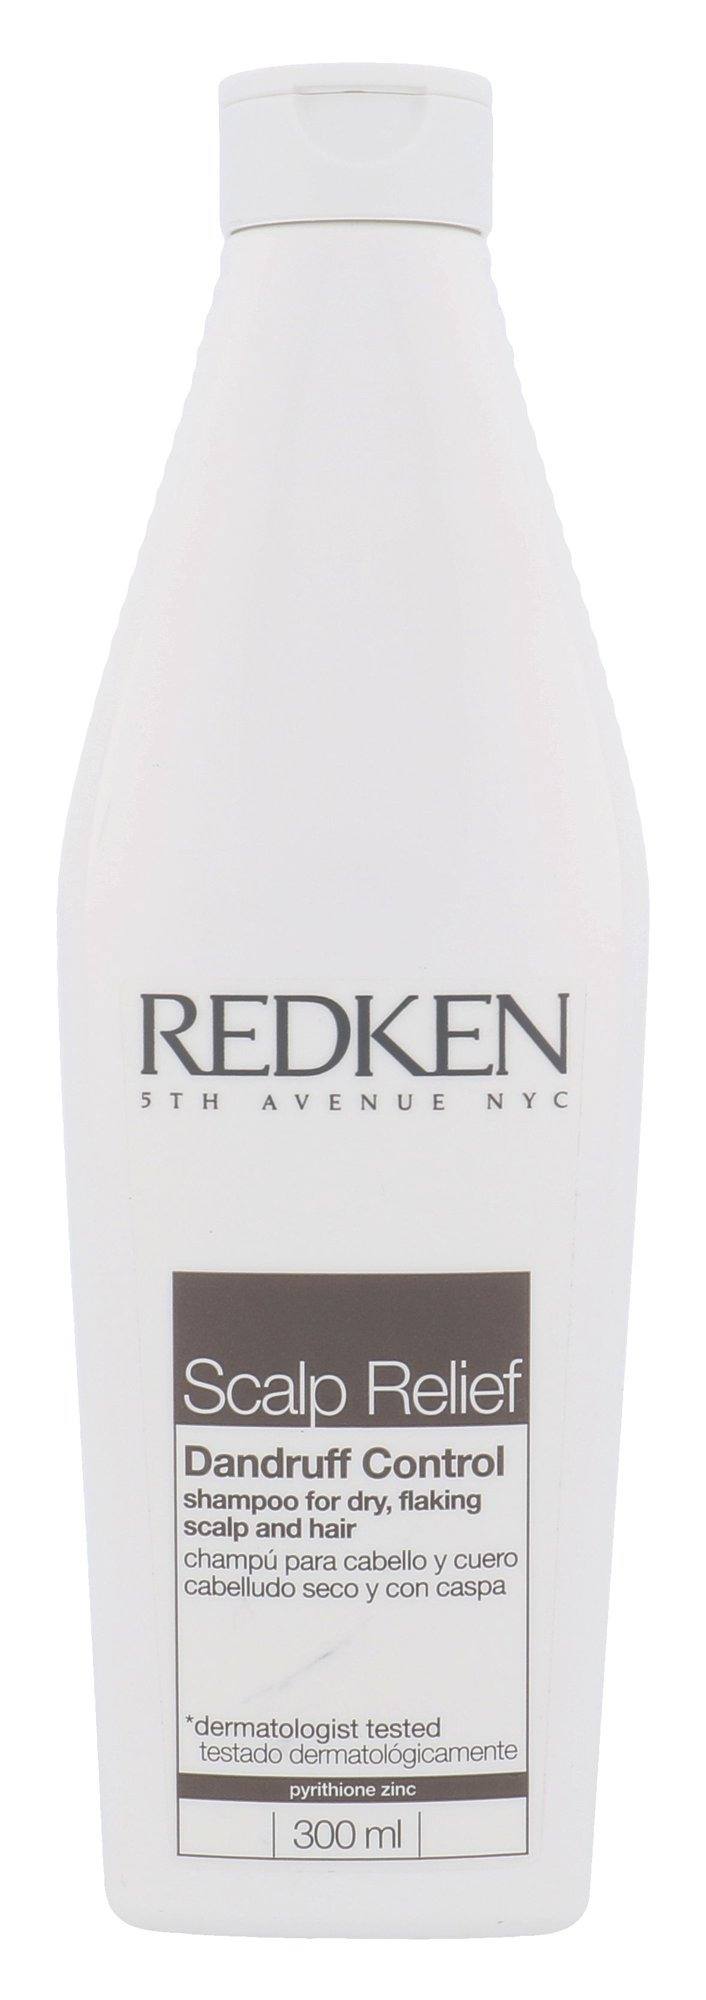 Redken Scalp Relief Cosmetic 300ml